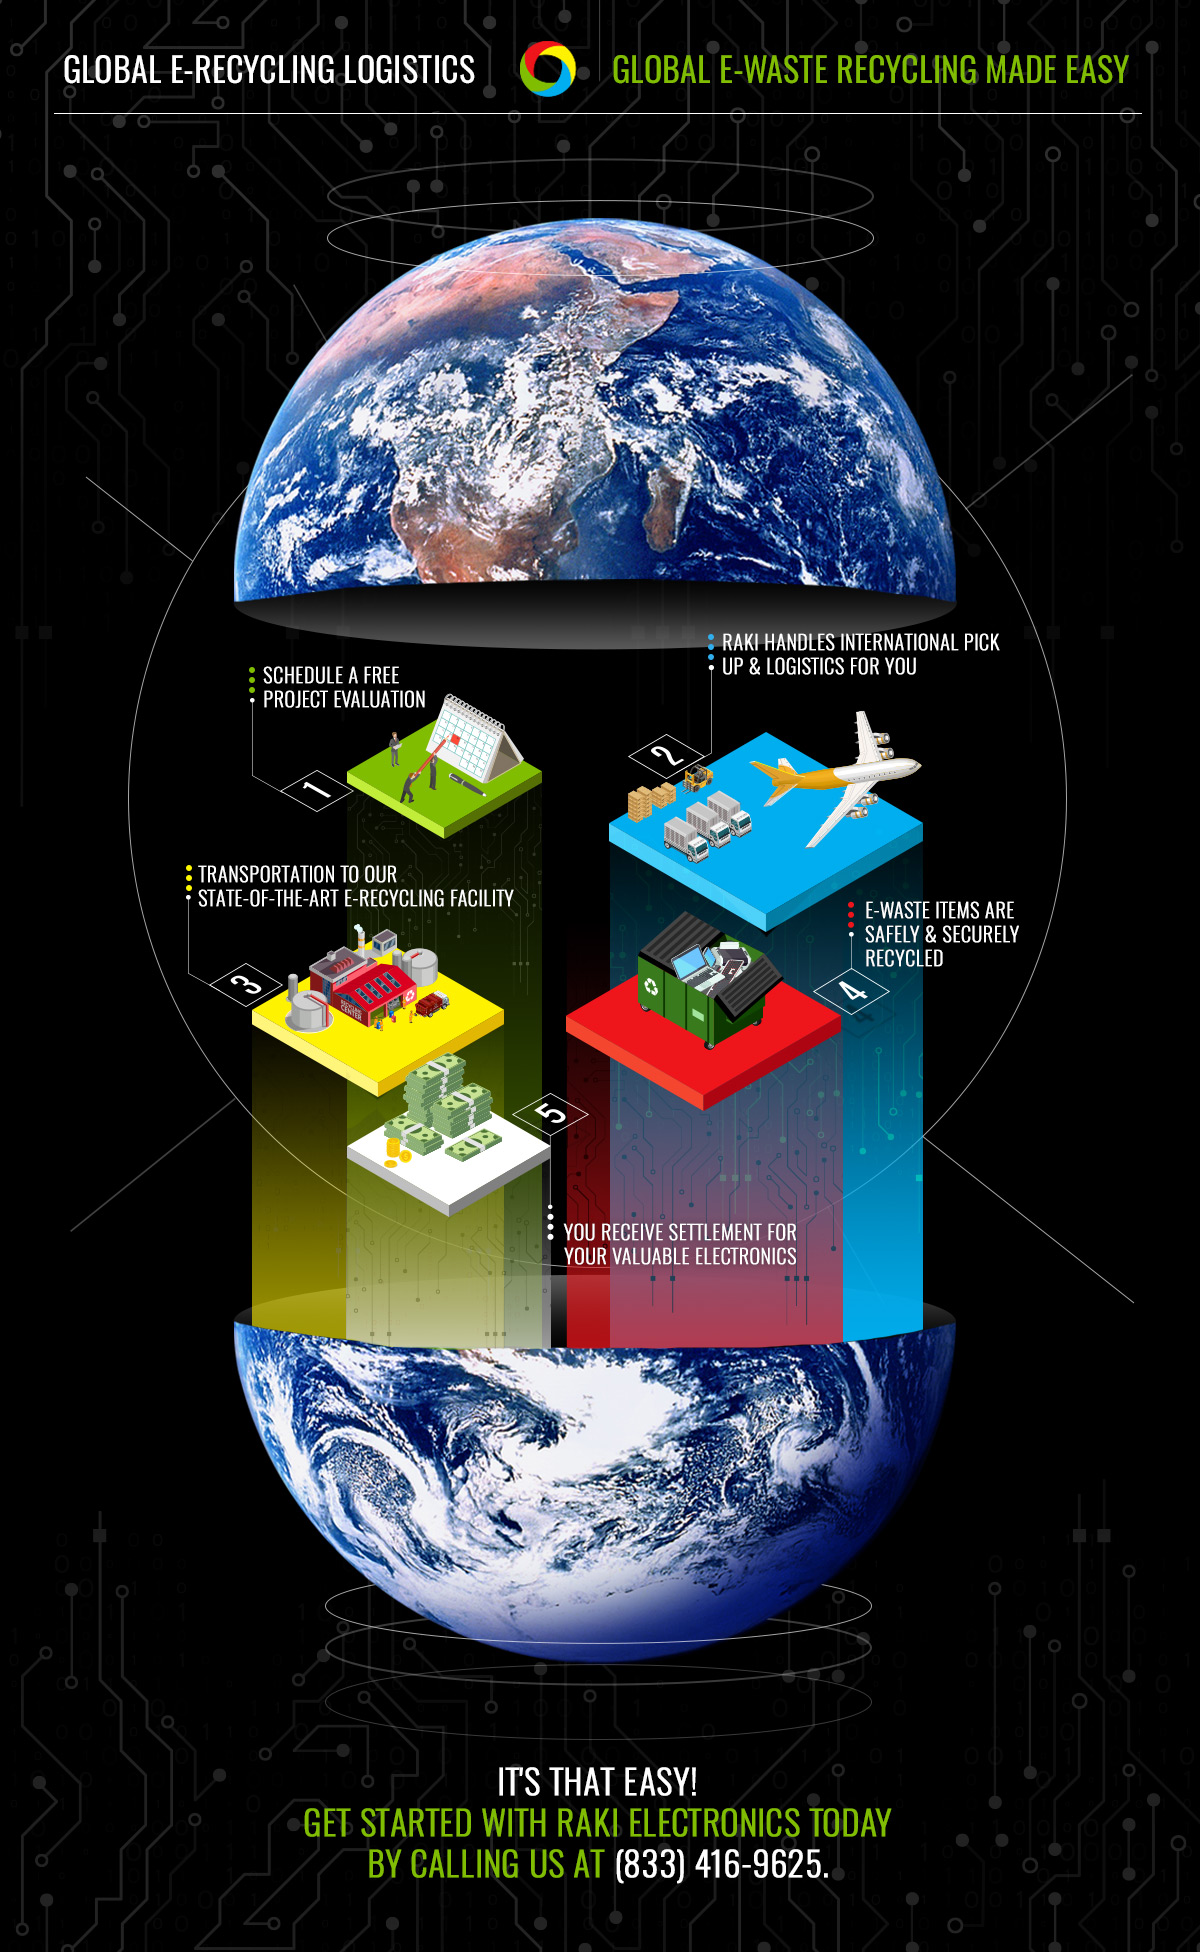 RAKI Electronics Recycling infographic depicting global e-waste recycling